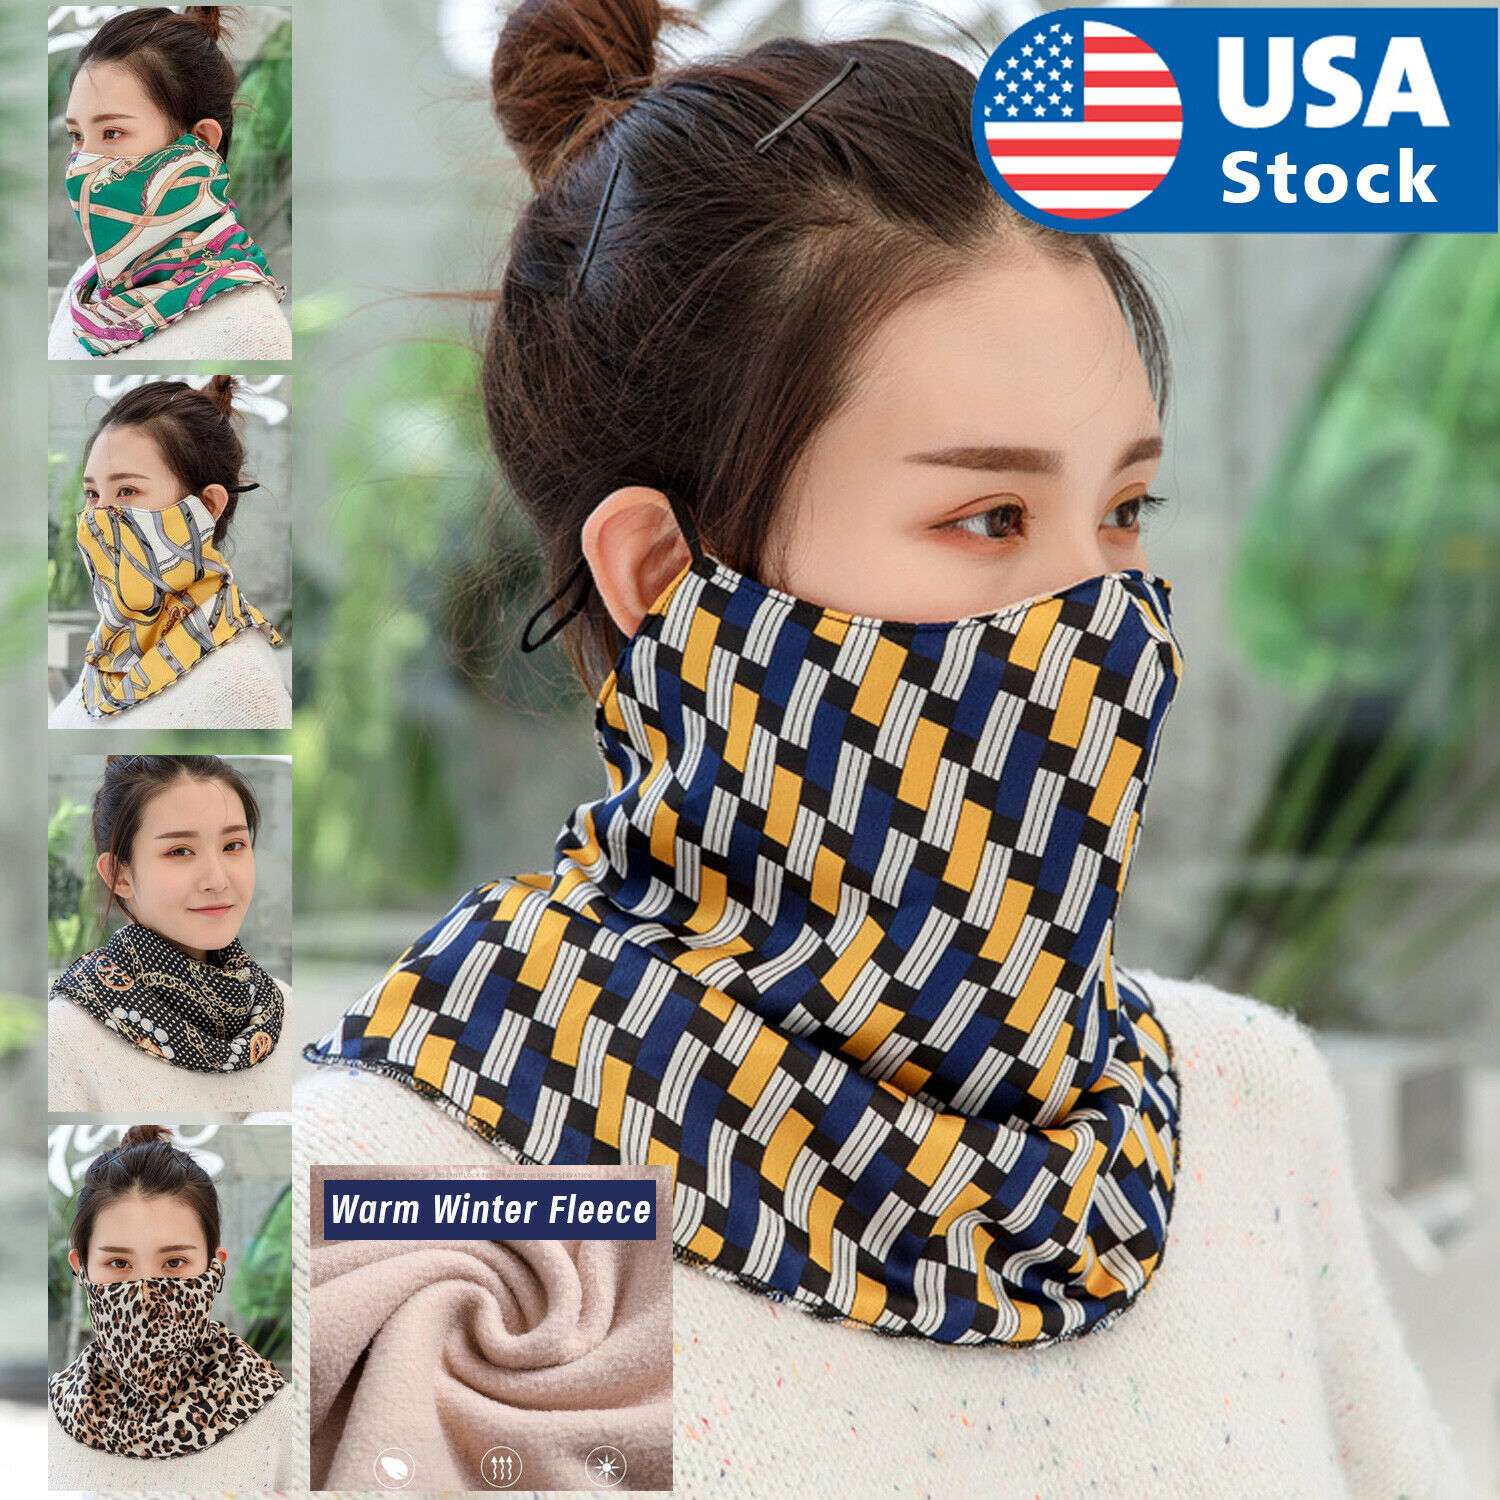 Multi-Purpose Bandana Tube Face Mask Neck Warmer Scarf Shield Snood US Clothing, Shoes & Accessories